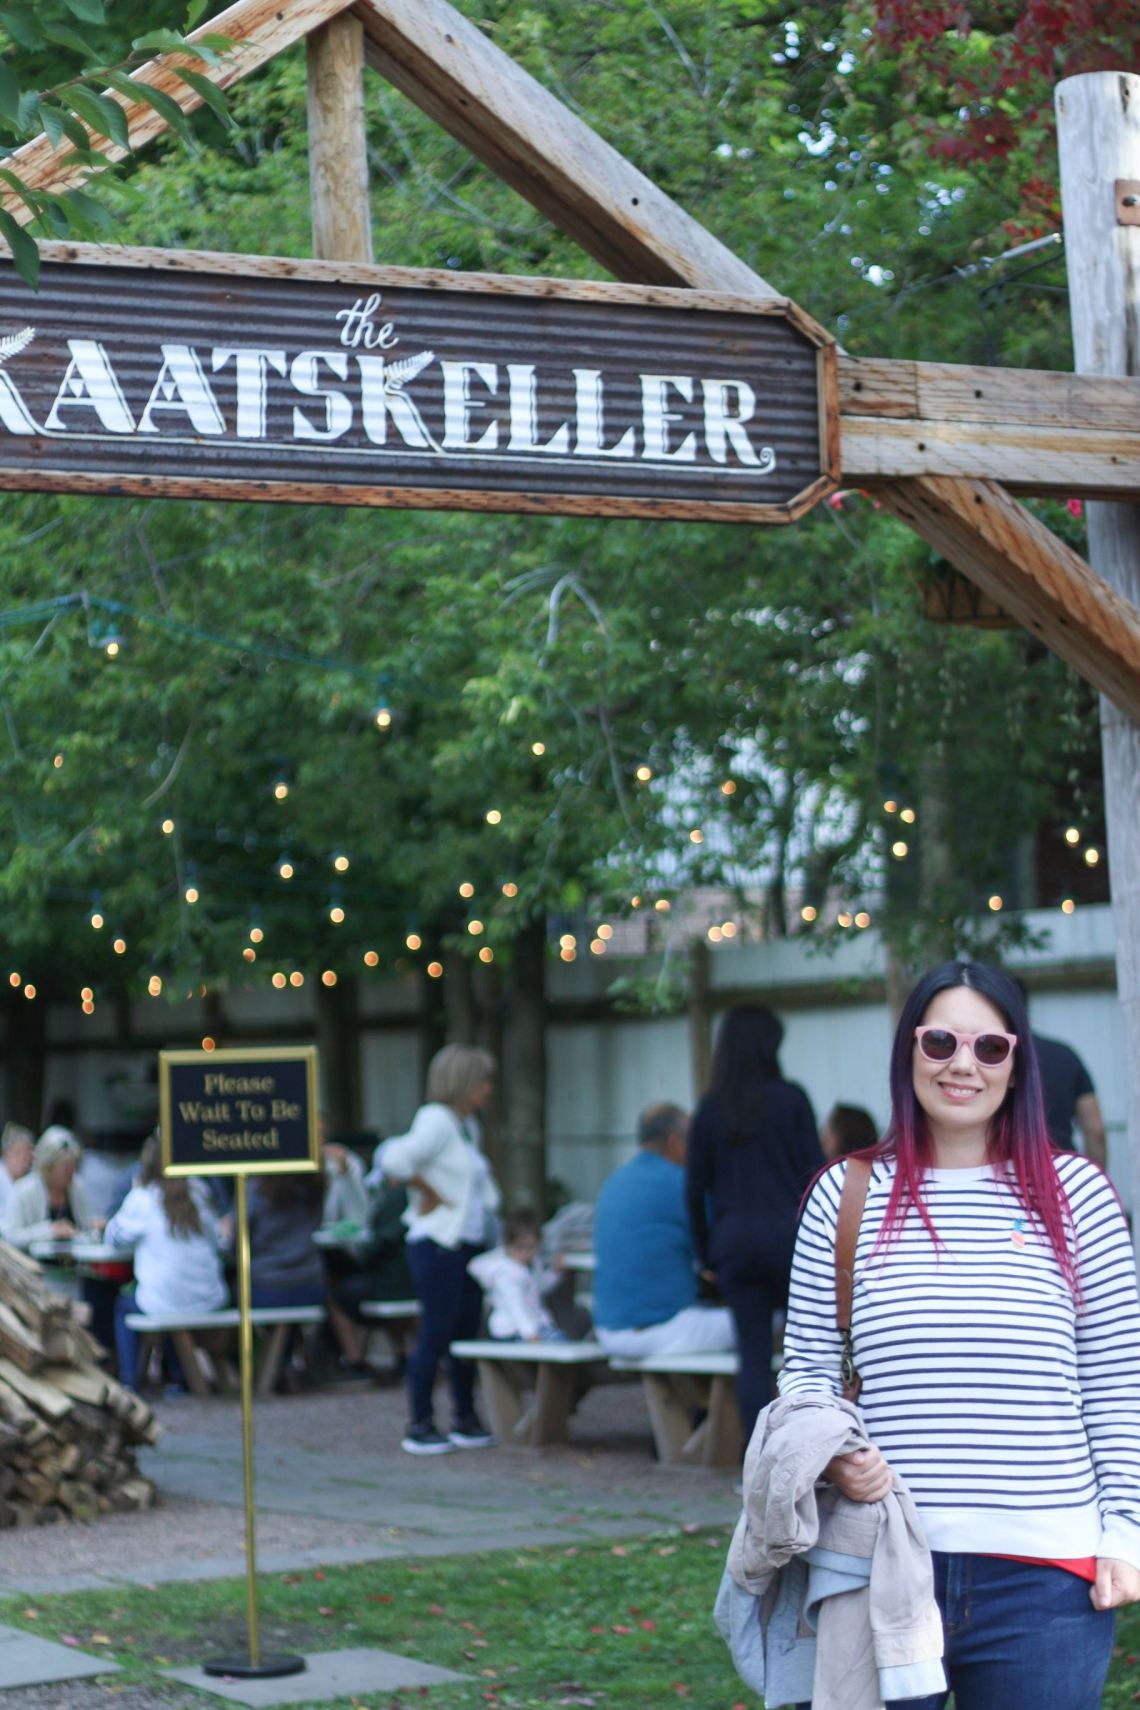 The Kaatskeller wood-fire oven pizza restaurant in Livingston Manor - Catskill, New York